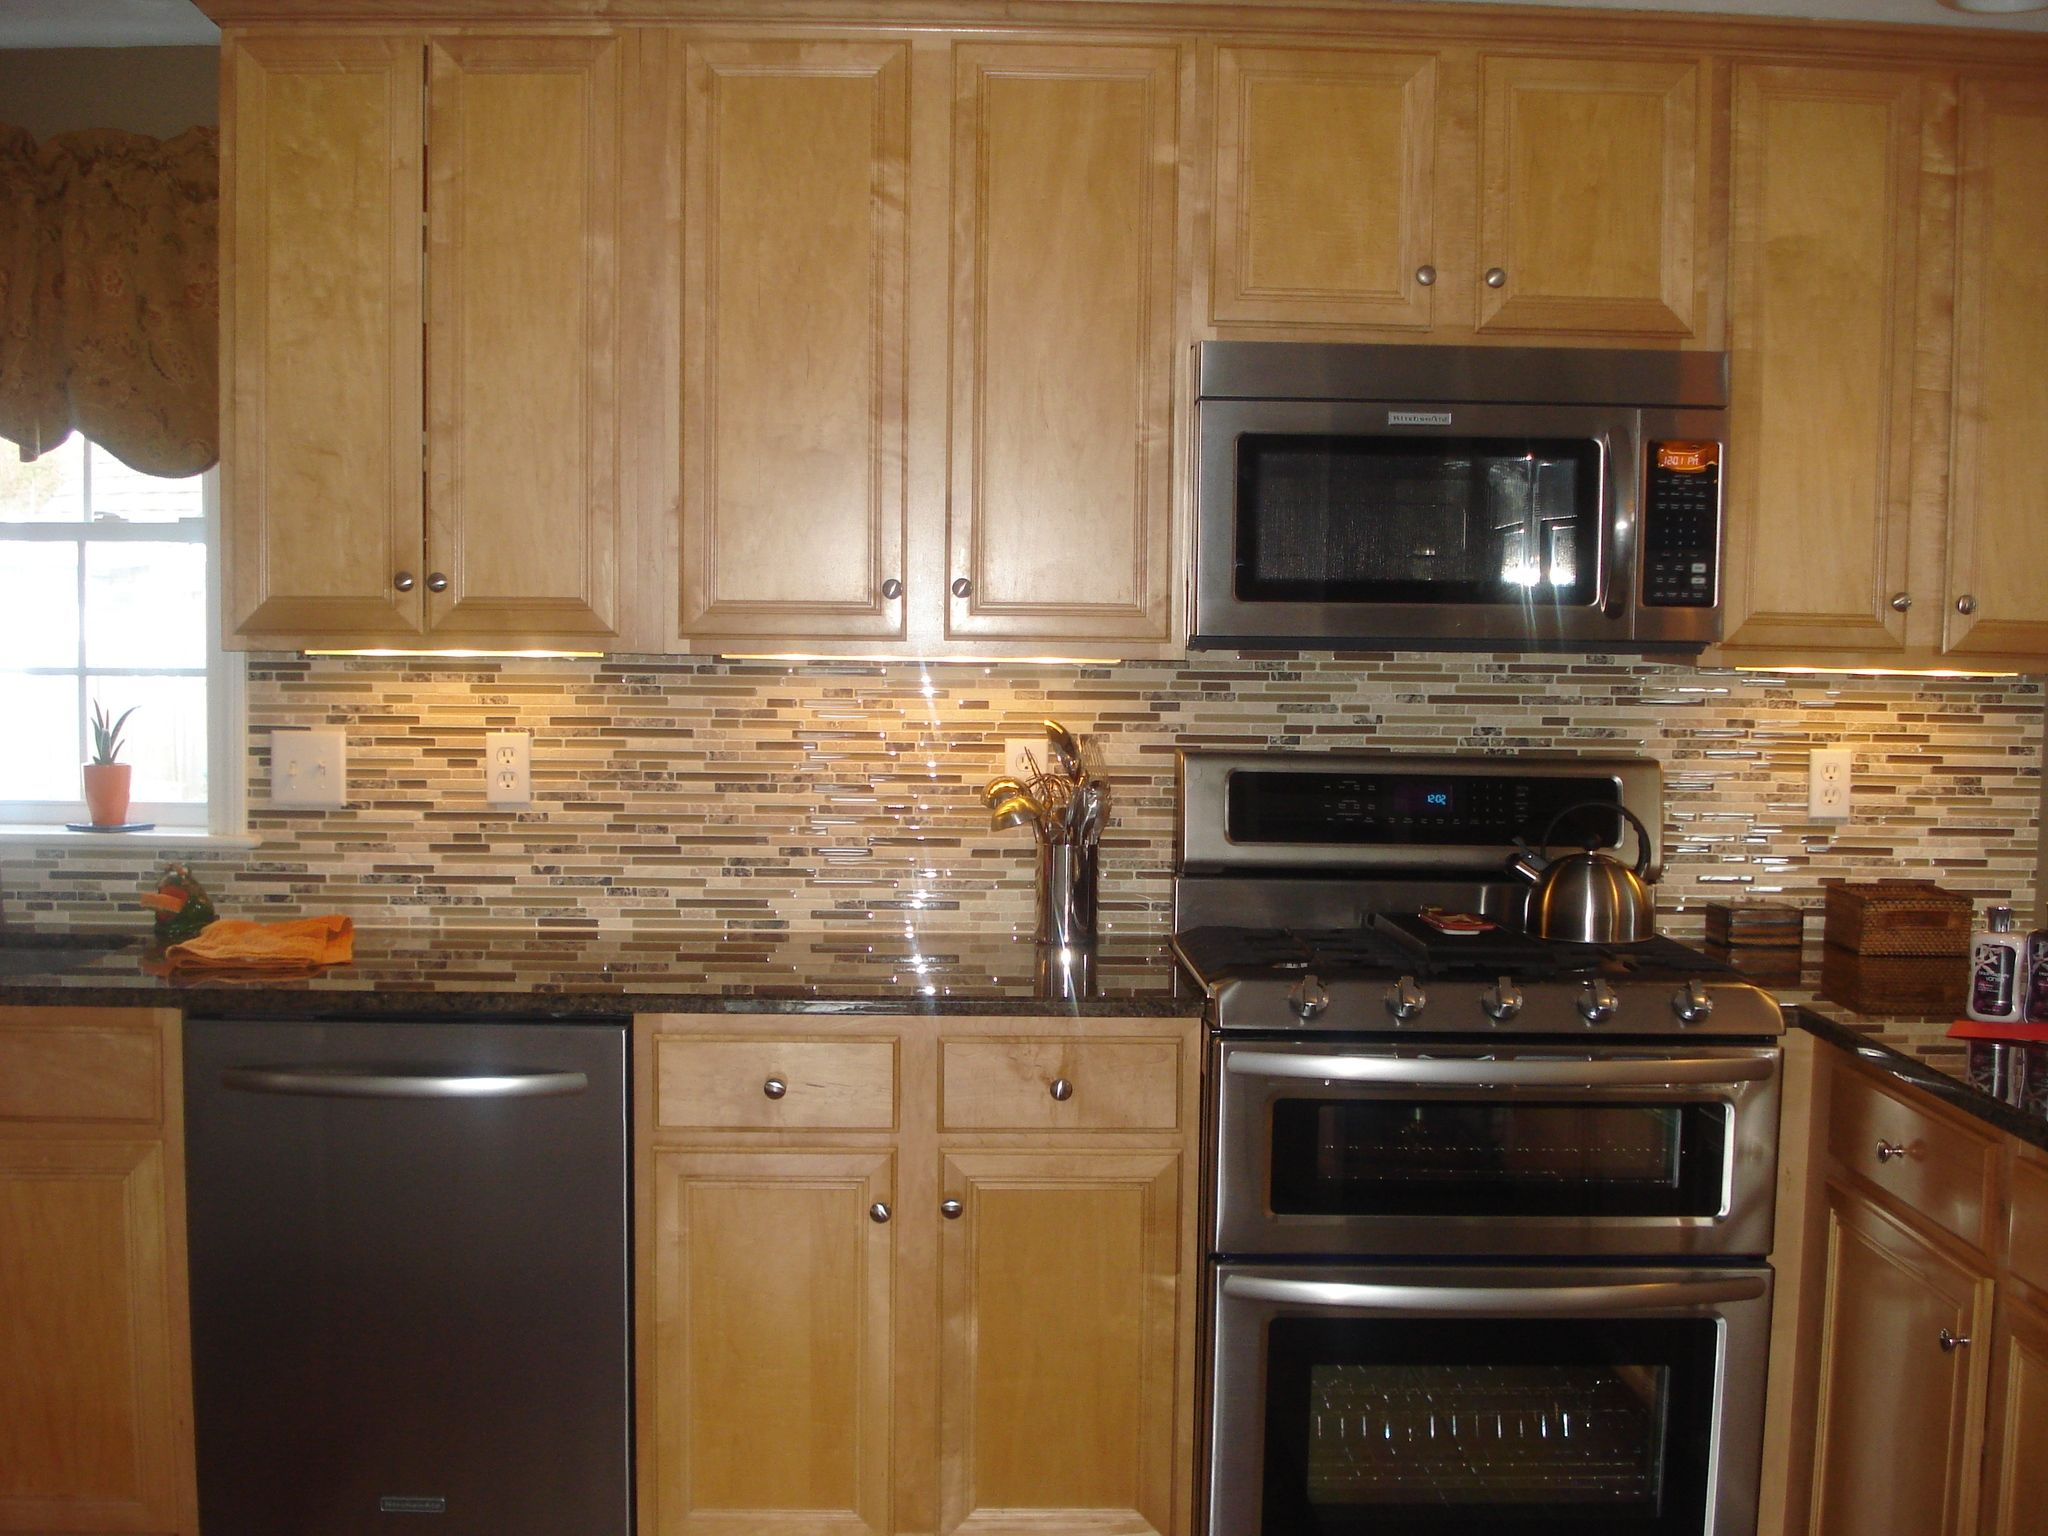 Decoration Appliances Kitchen Idea Ideas Captivating Wood ... on What Color Granite Goes With Honey Maple Cabinets  id=94581